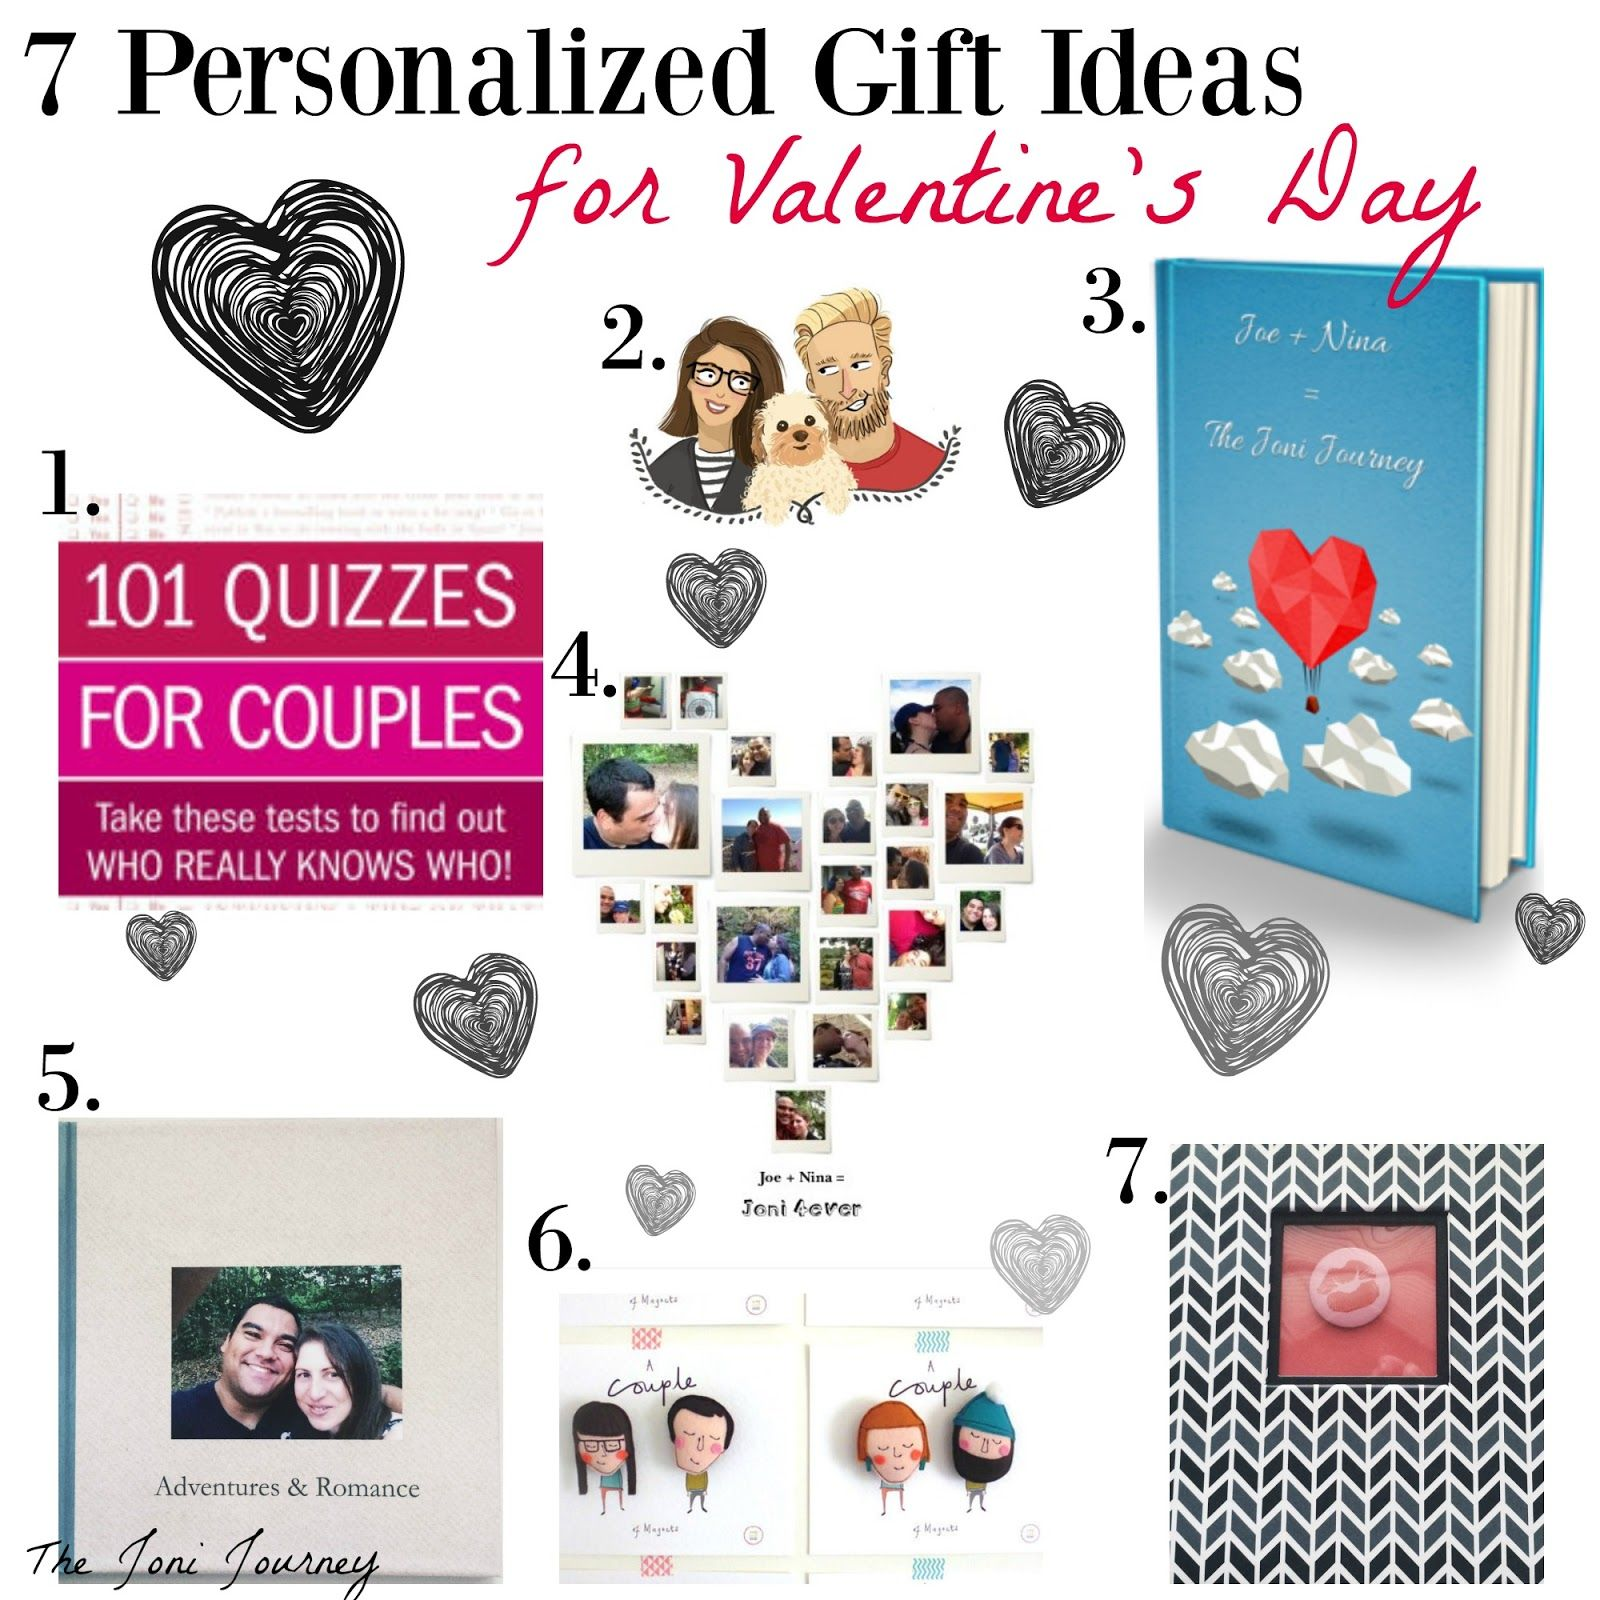 The Joni Journey: Personalized Valentine's Gift Ideas - meaningful Valentine's gifts for your spouse, DIY Valentine's Gift ideas